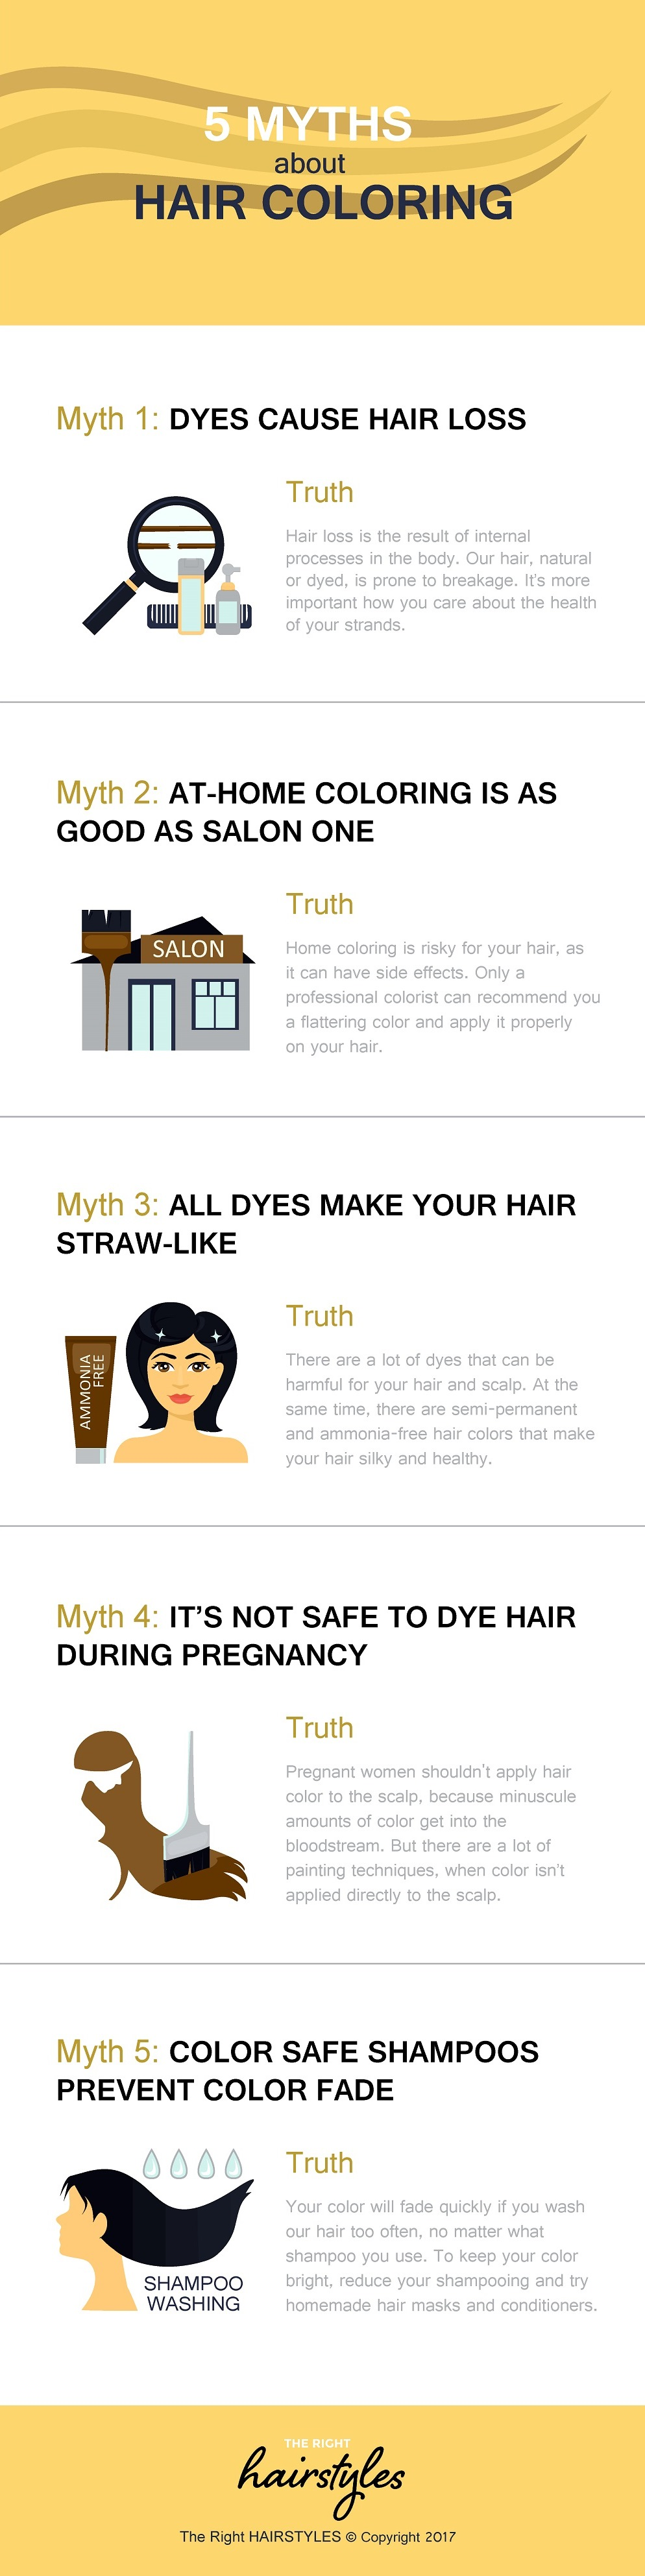 Myths About Hair Coloring